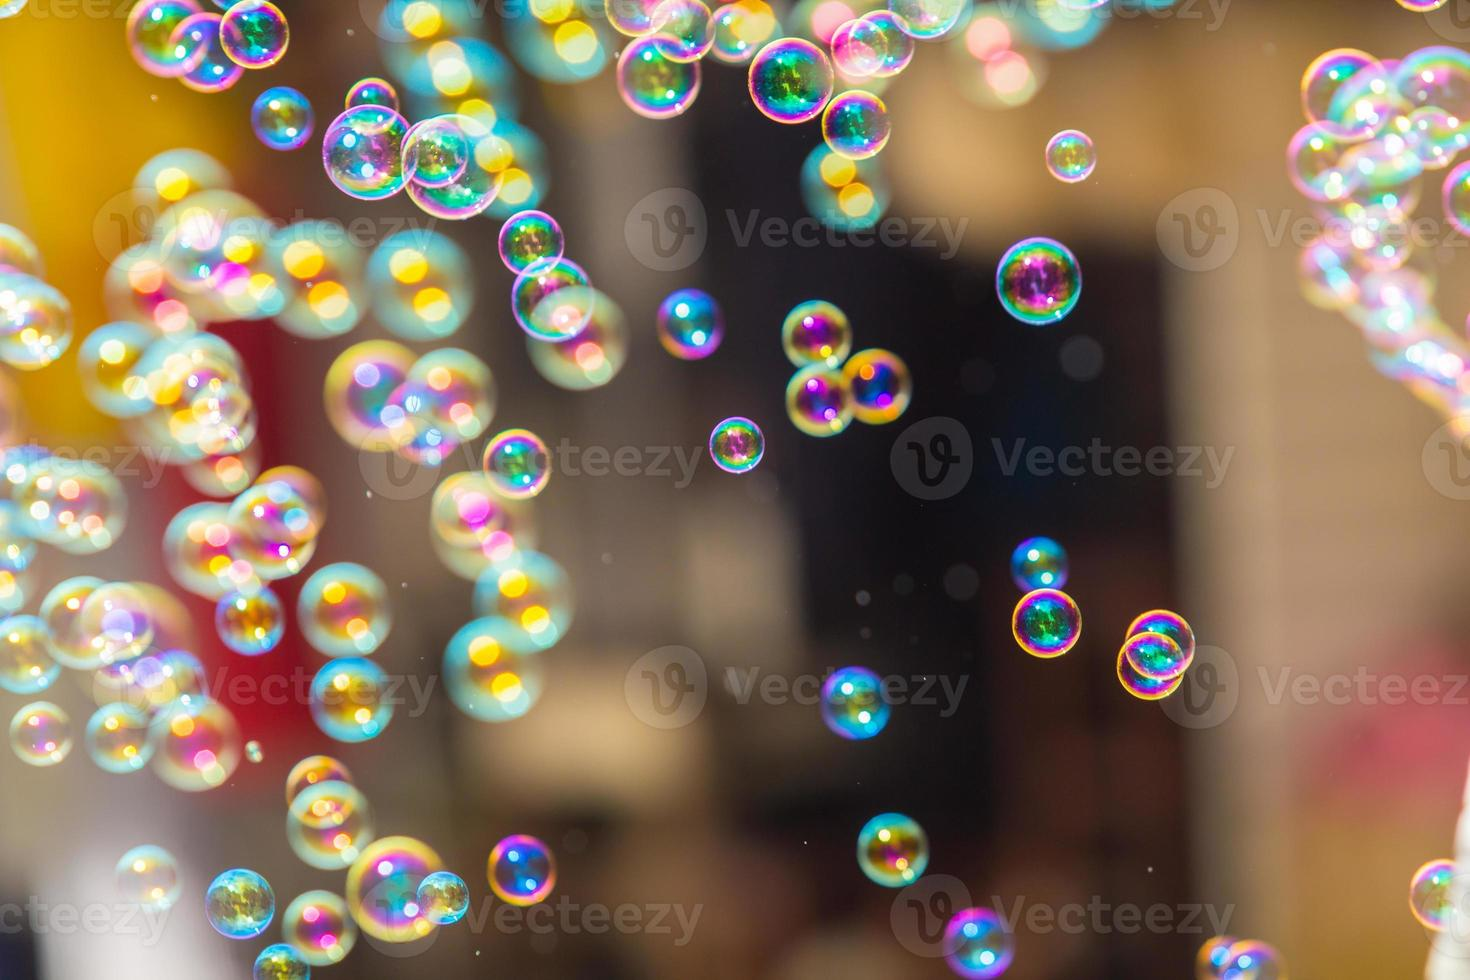 The rainbow soap bubbles from the bubble blower. photo